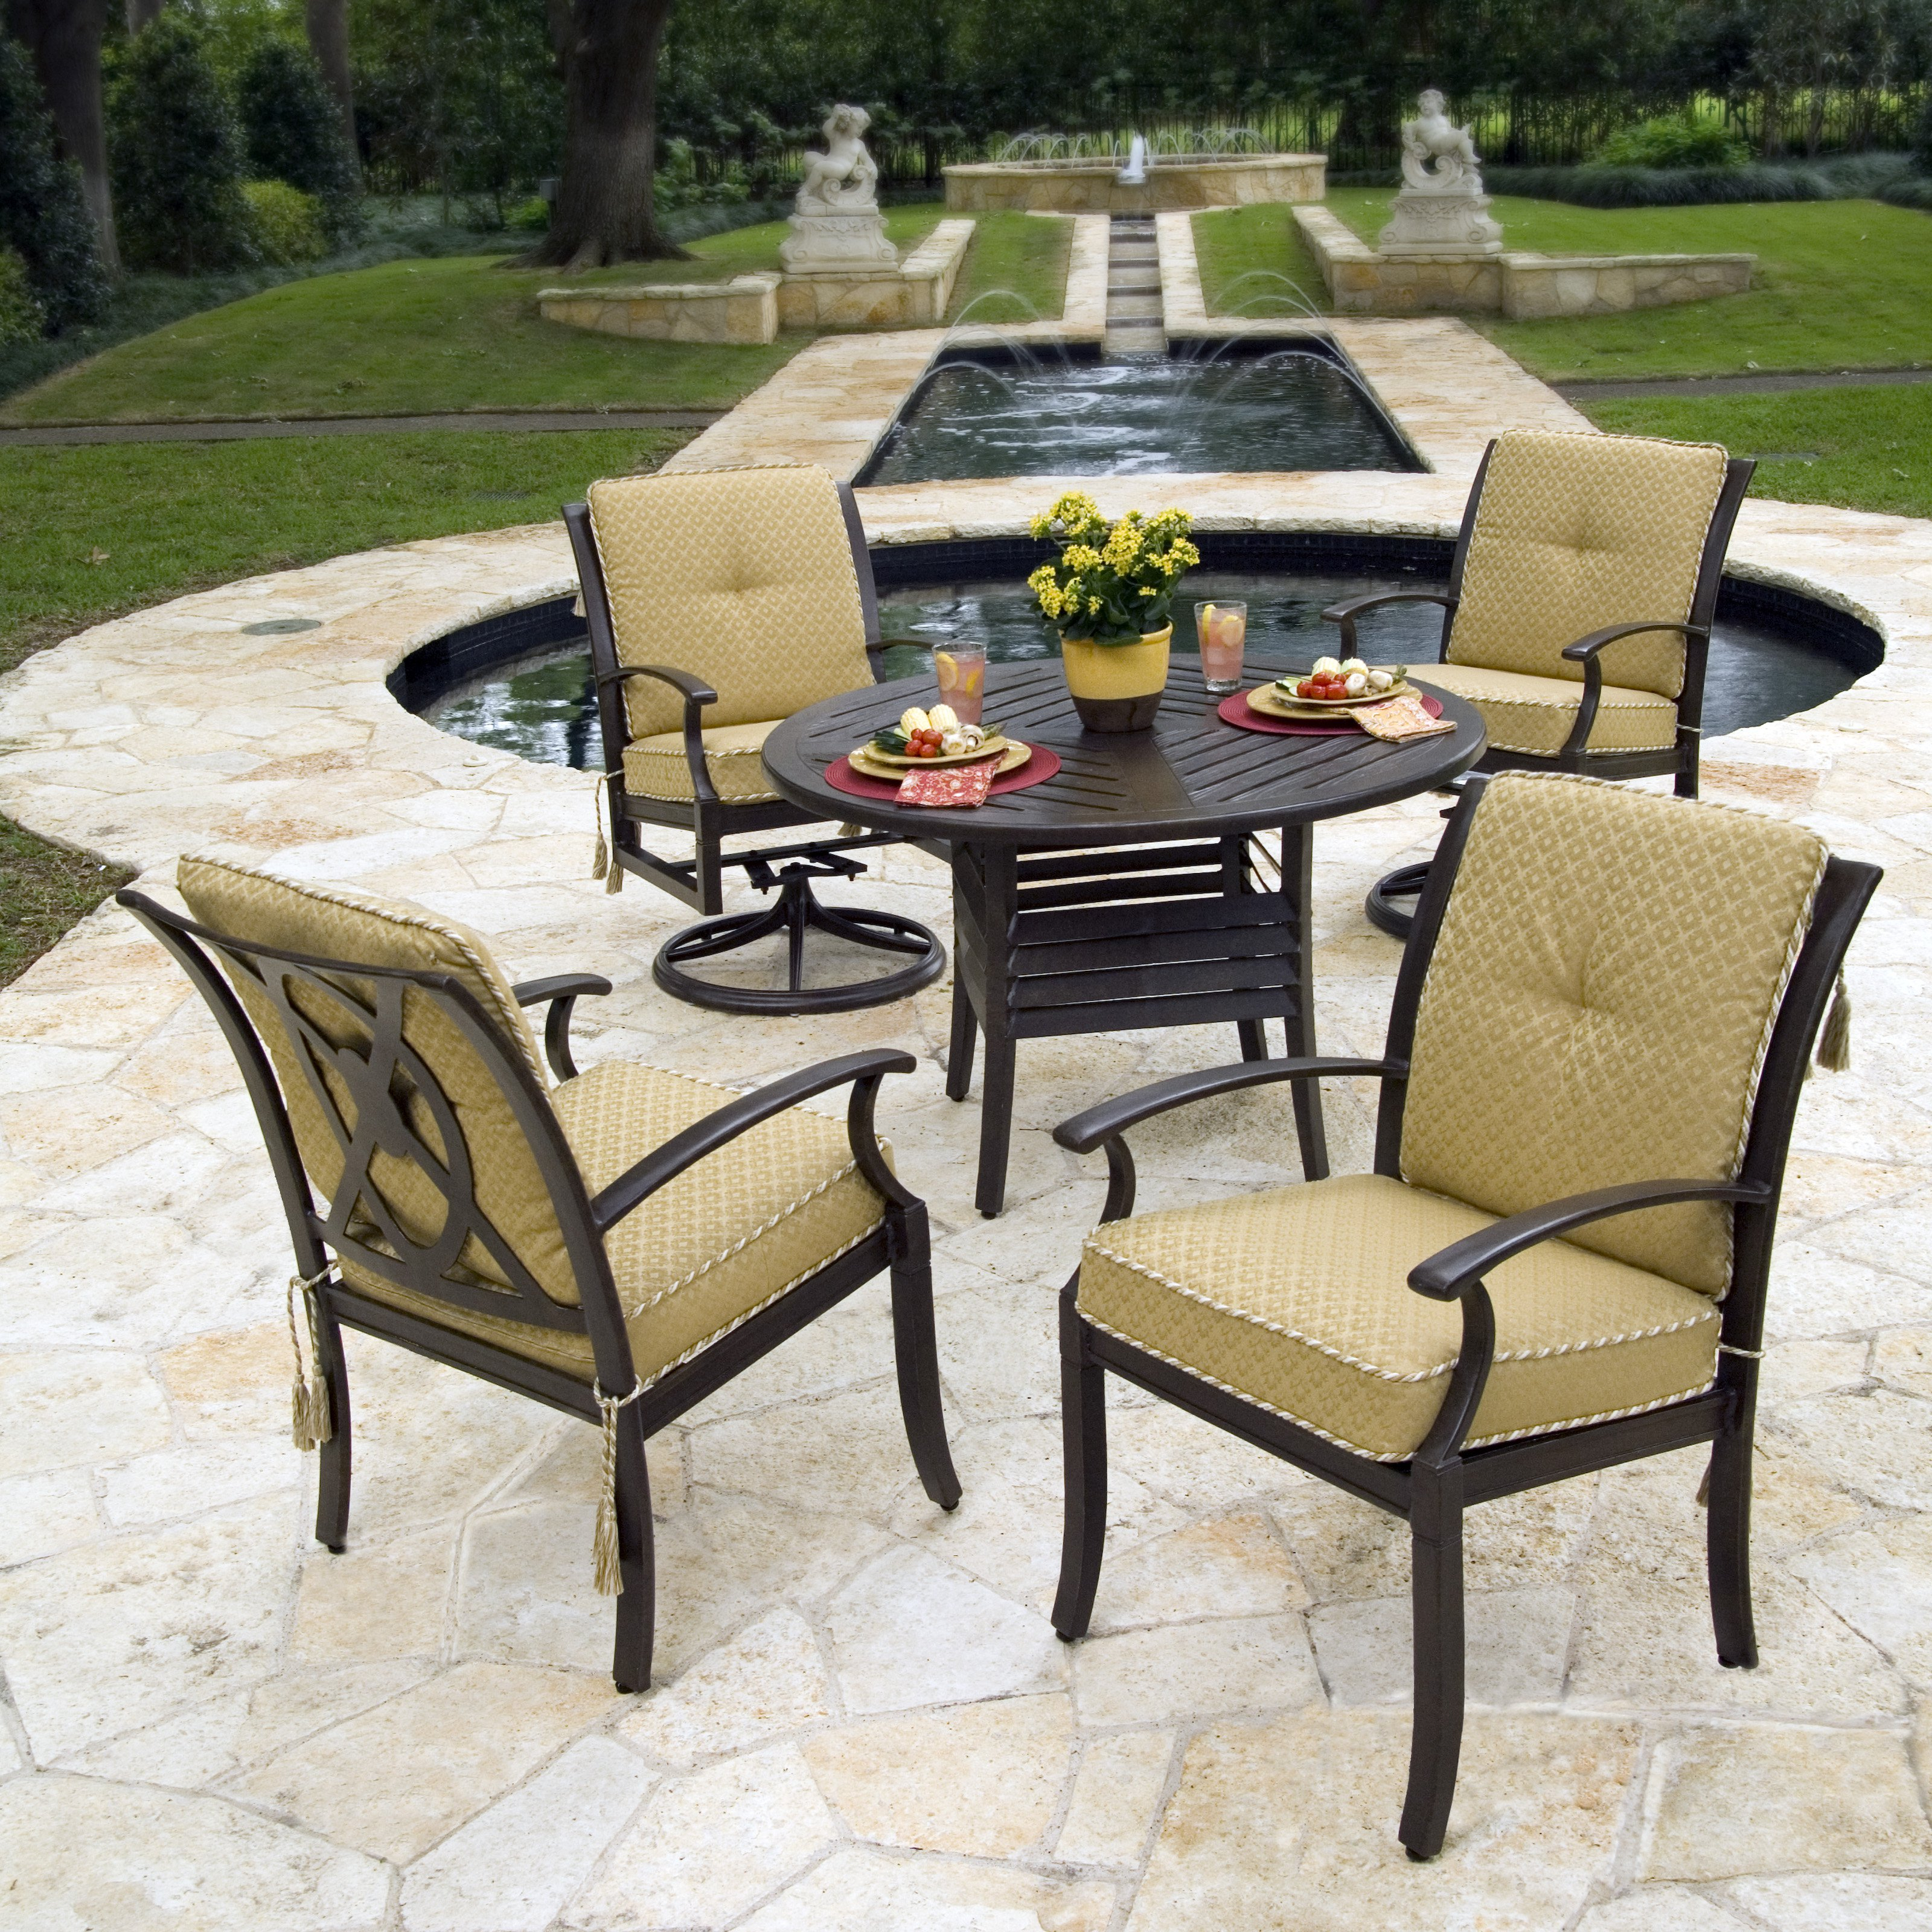 Furniture Target Patio Chairs For Cozy Outdoor Furniture intended for sizing 3200 X 3200